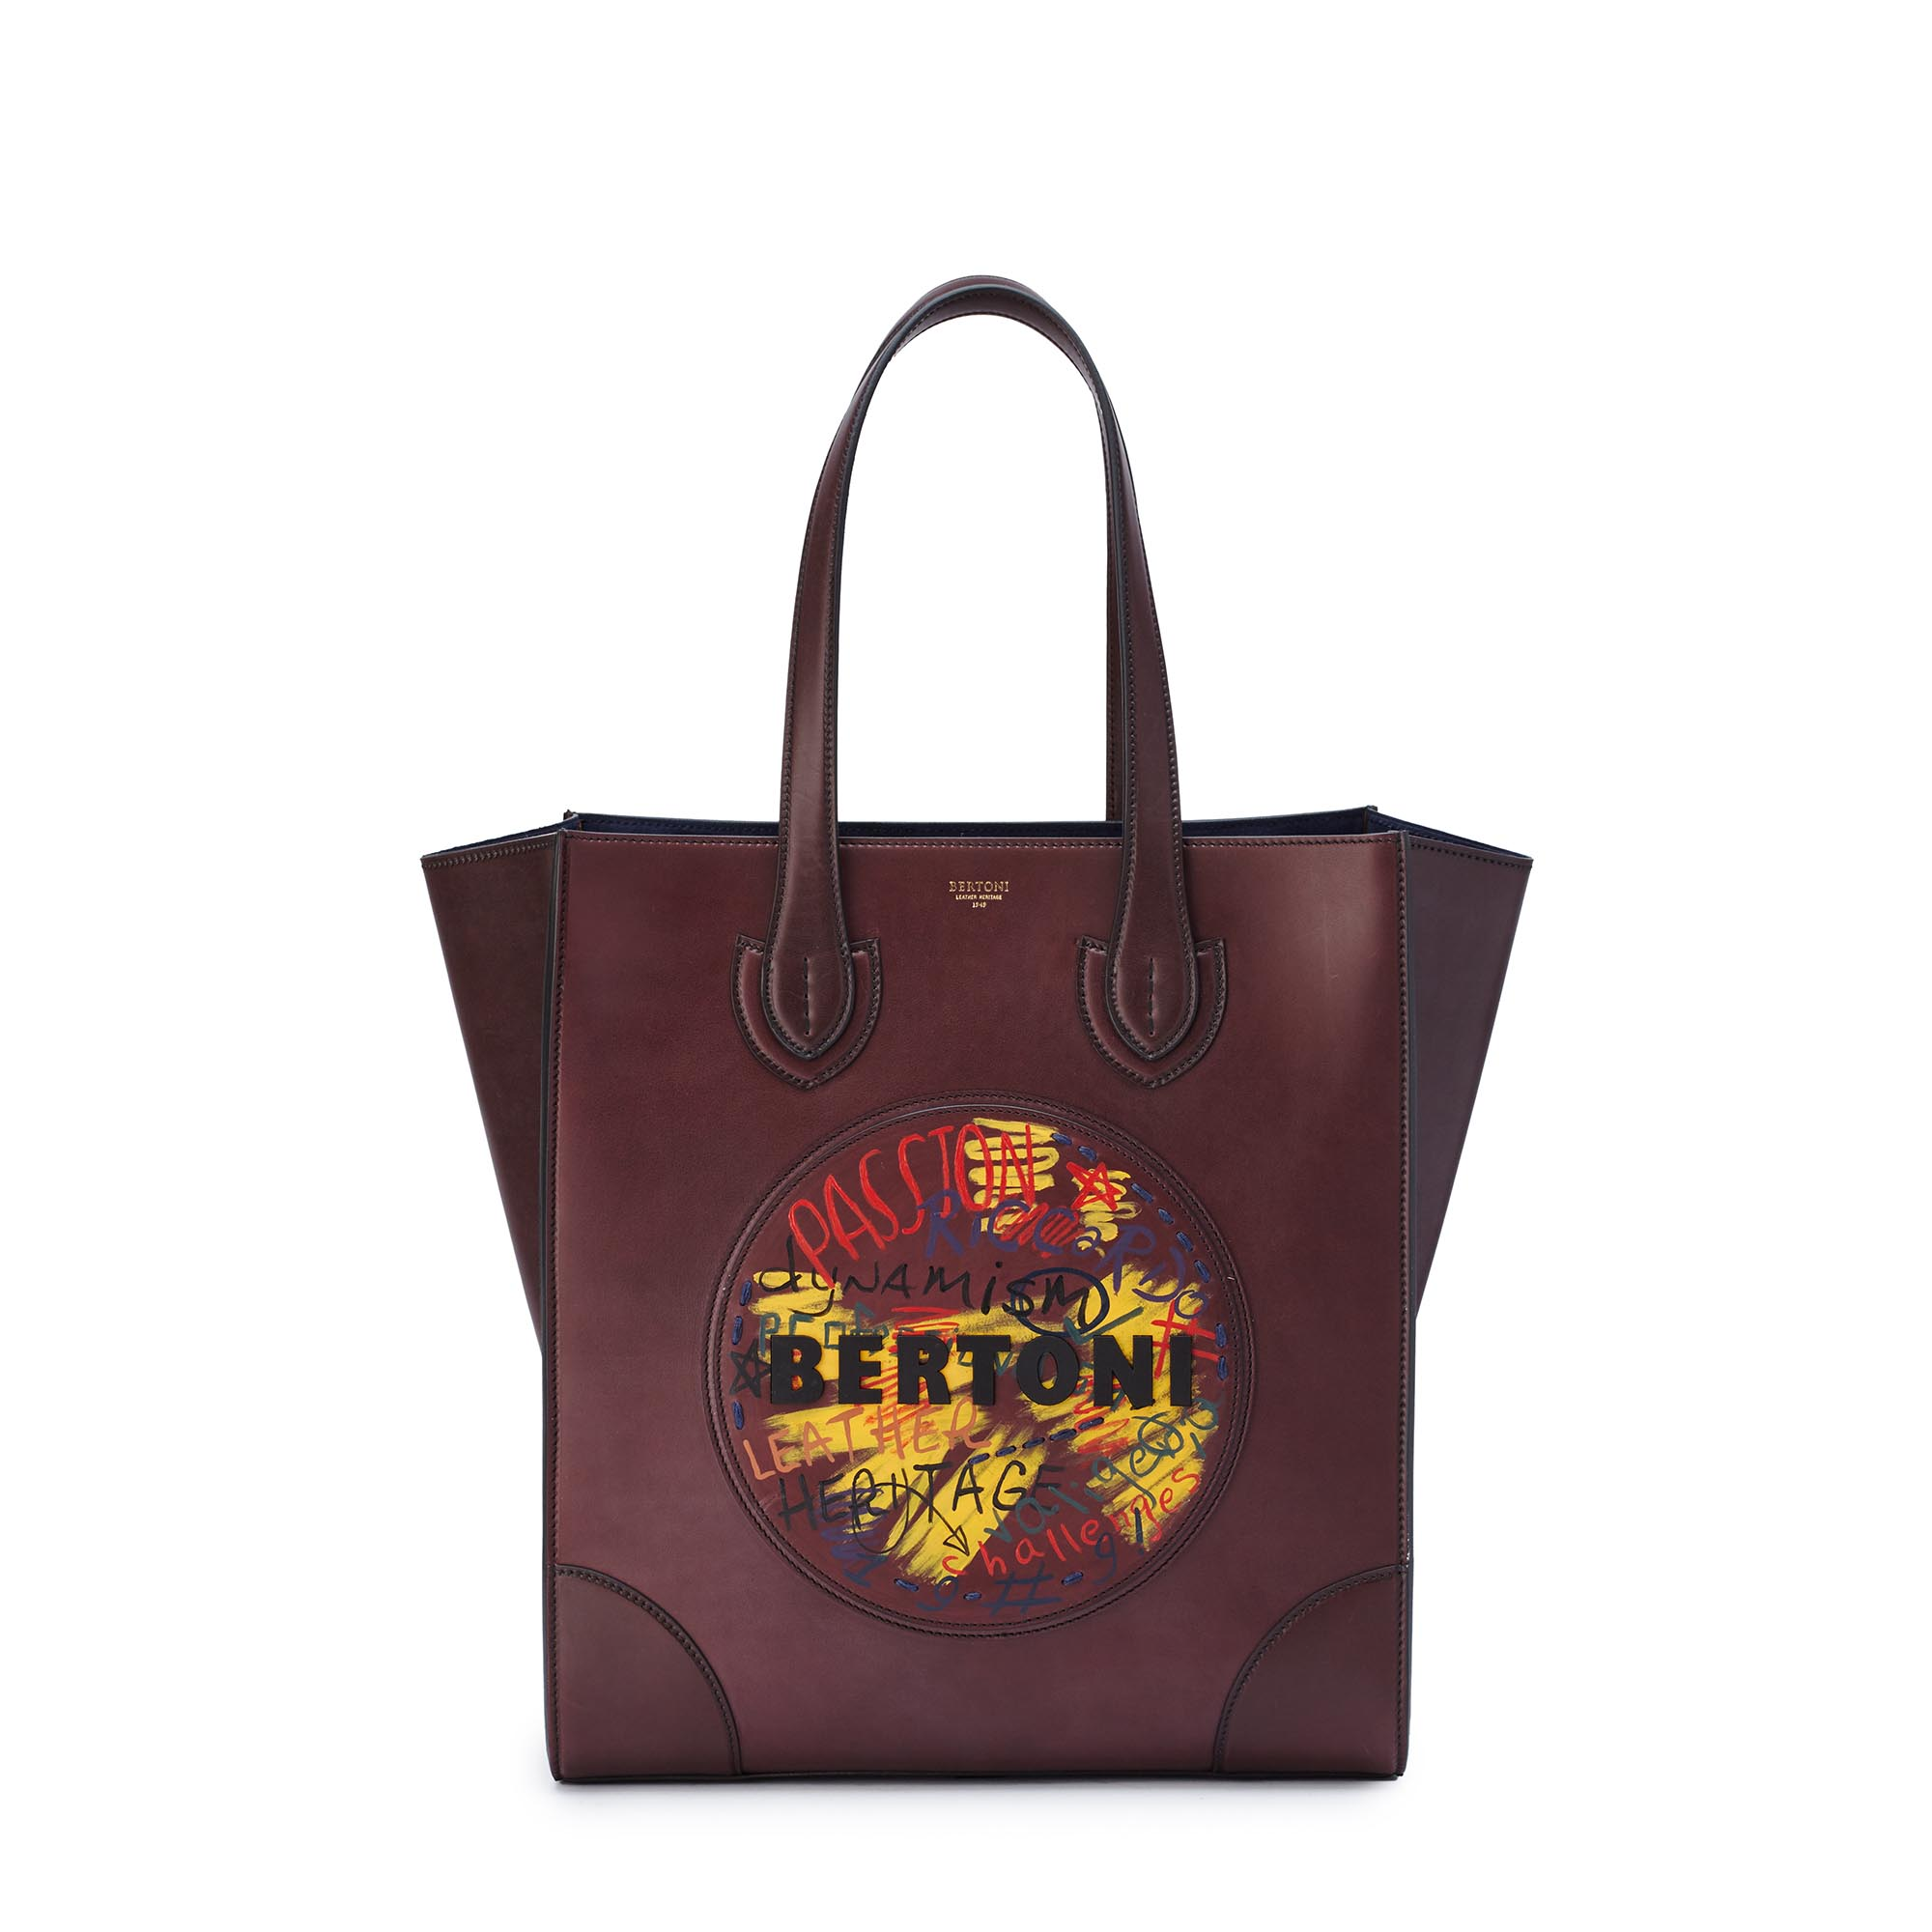 Signature-Tote-bordeaux-french-calf-bag-Bertoni-1949_01